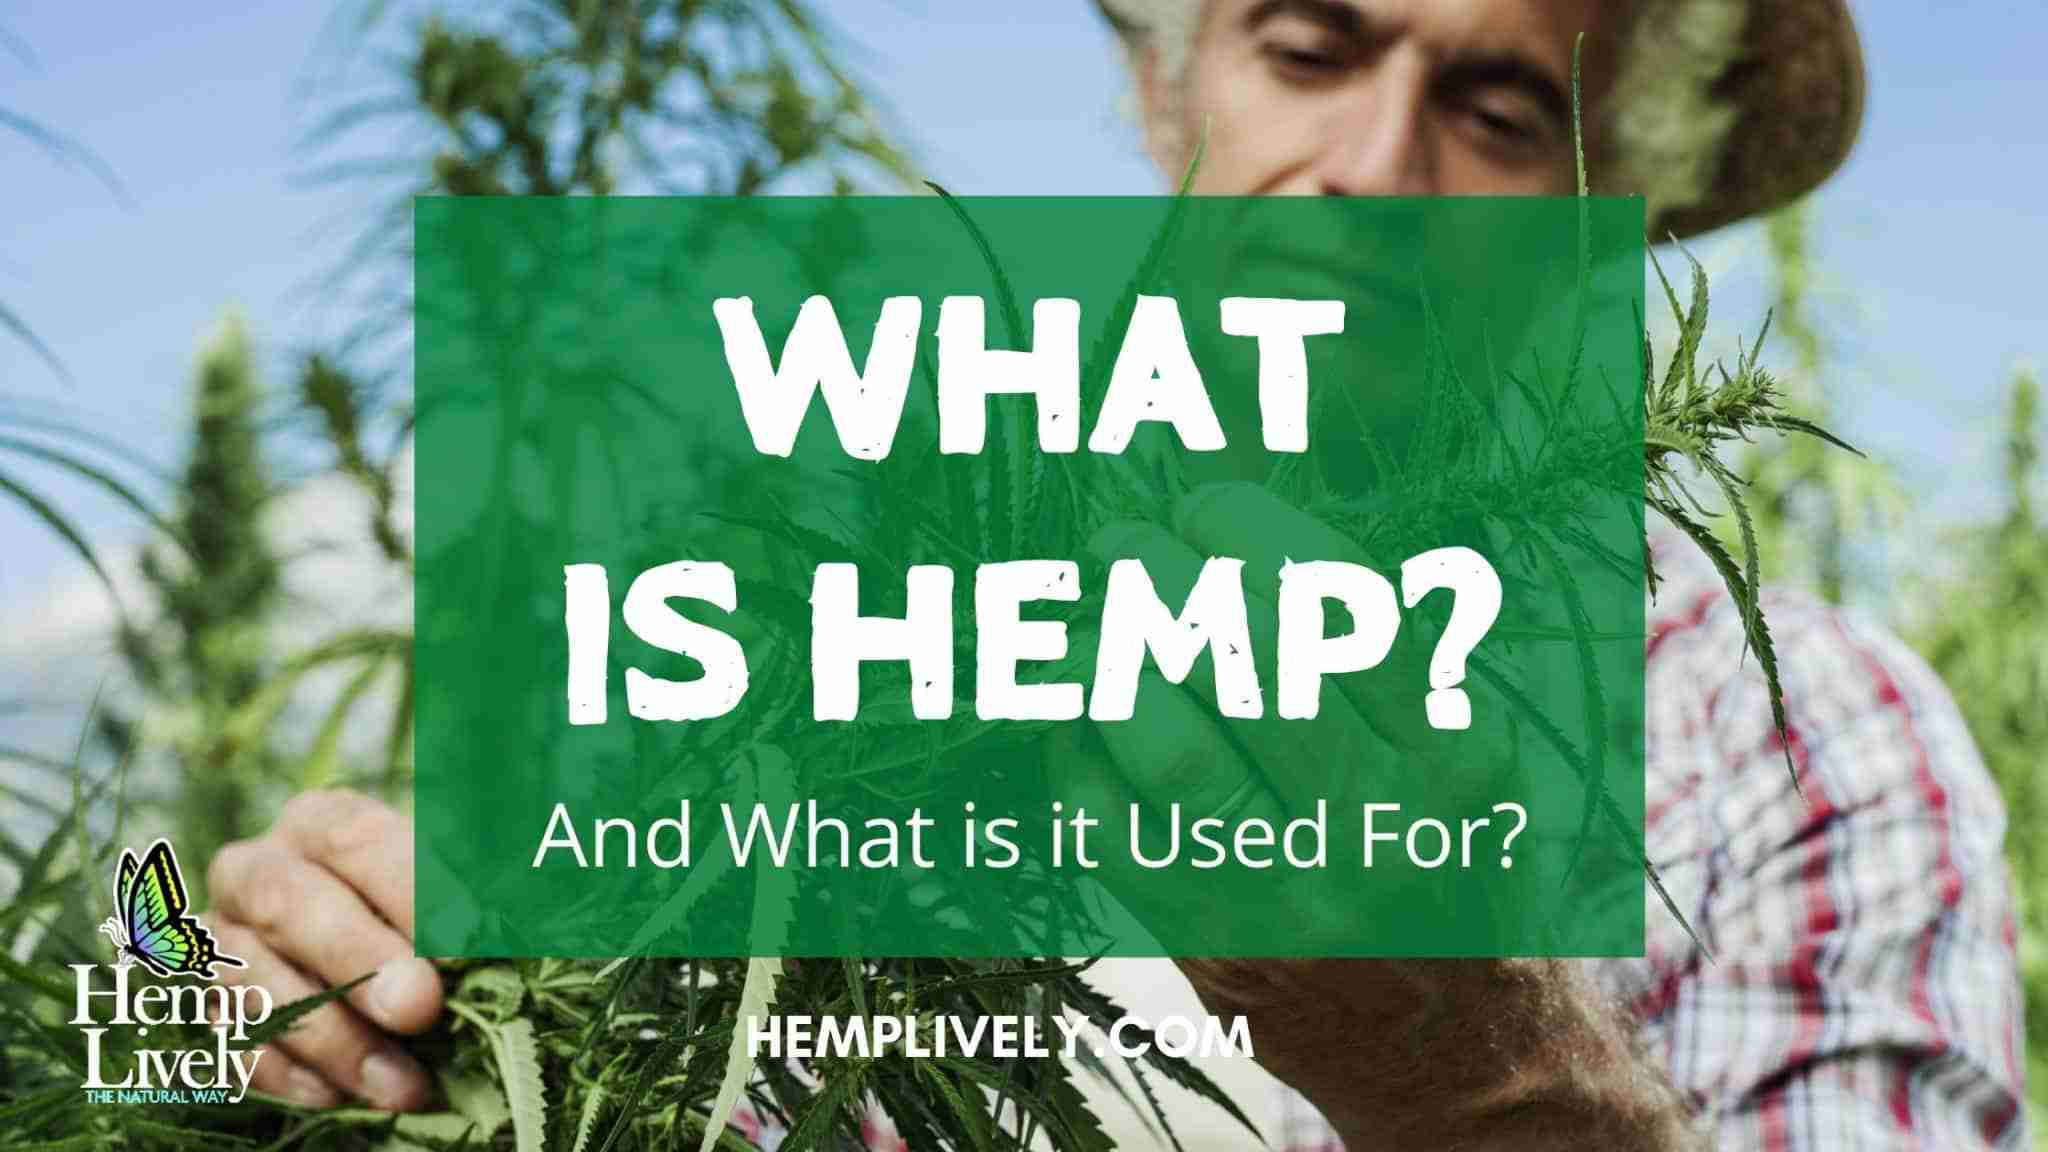 What is Hemp and What is it Used For?